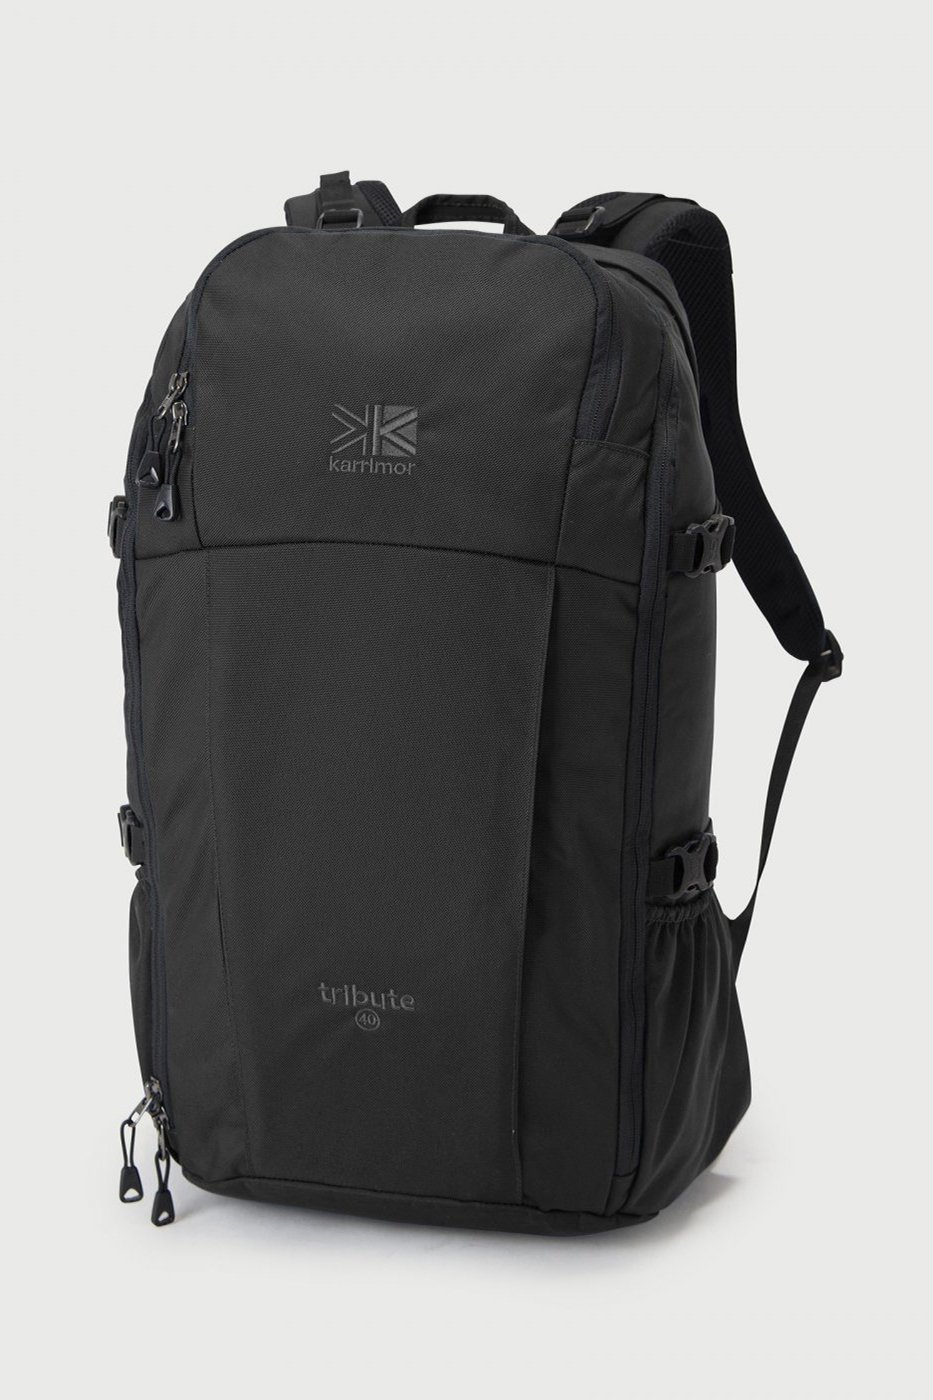 <img class='new_mark_img1' src='https://img.shop-pro.jp/img/new/icons5.gif' style='border:none;display:inline;margin:0px;padding:0px;width:auto;' />Karrimor-カリマー-tribute 40-BLACK-